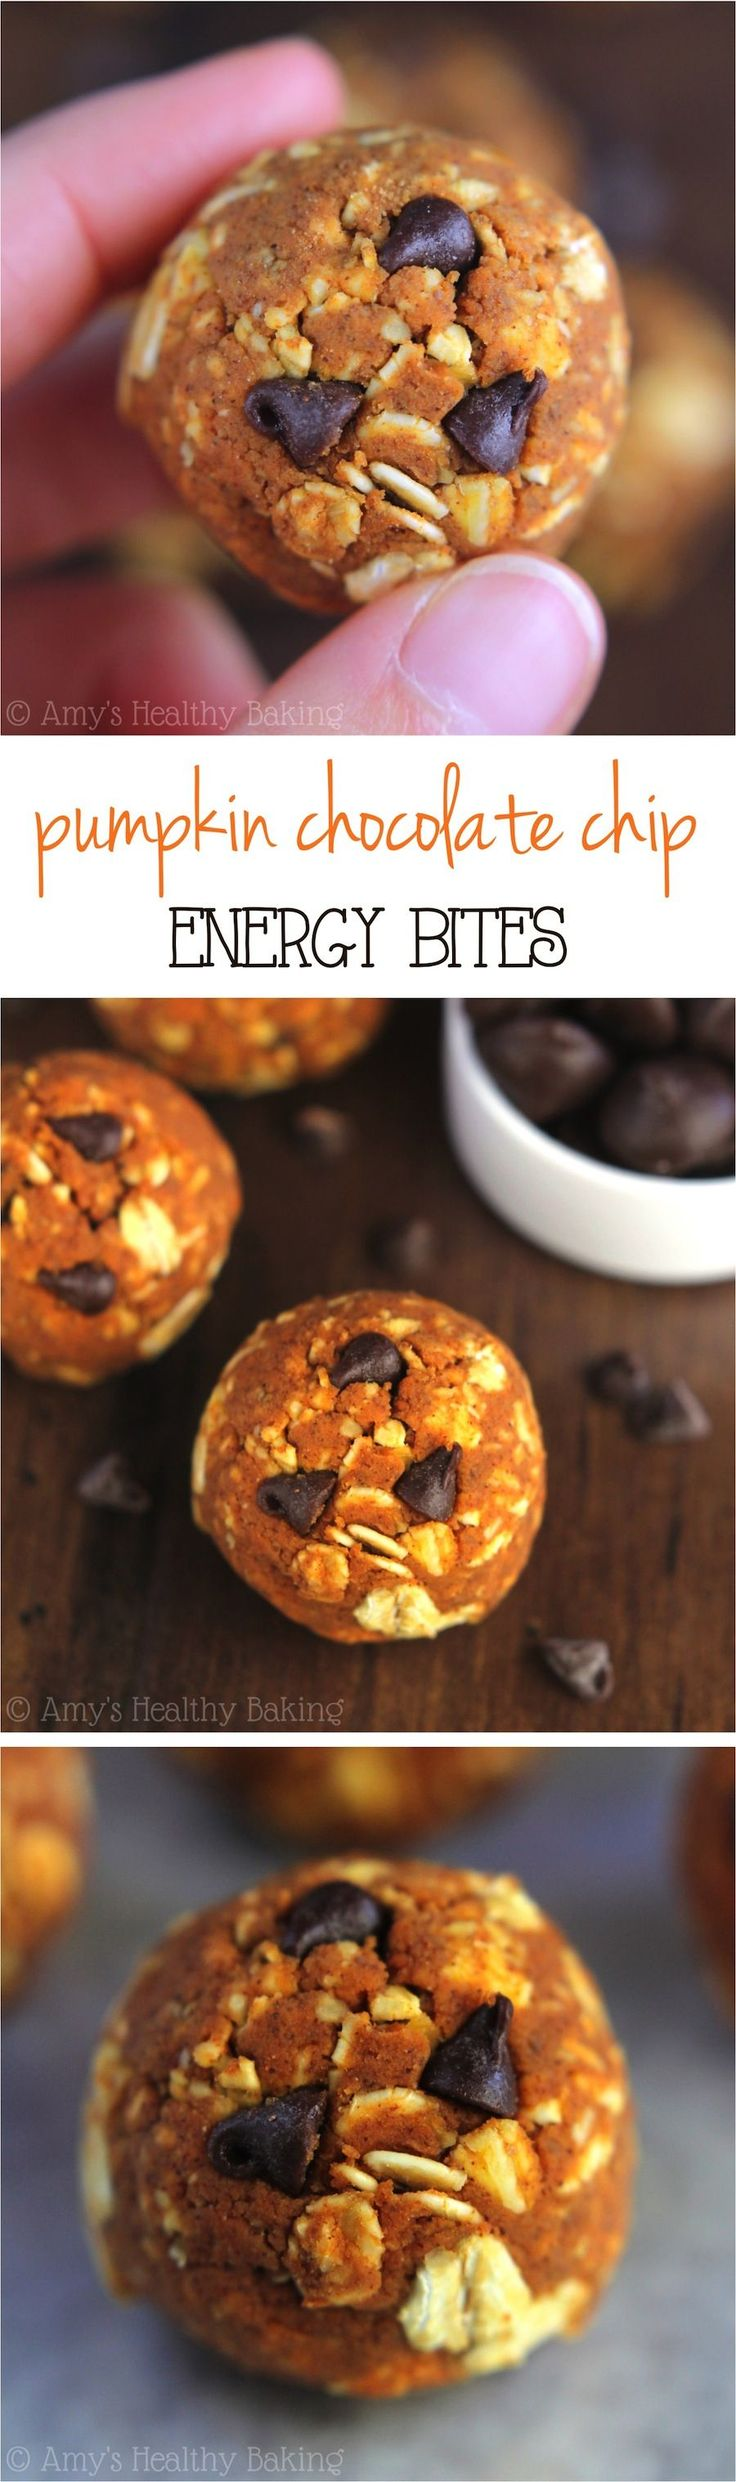 mens slip on pumps uk Pumpkin Chocolate Chip Energy Bites    like a healthy snack version of the cookies  Only 6 ingredients  amp  almost 10 grams of protein